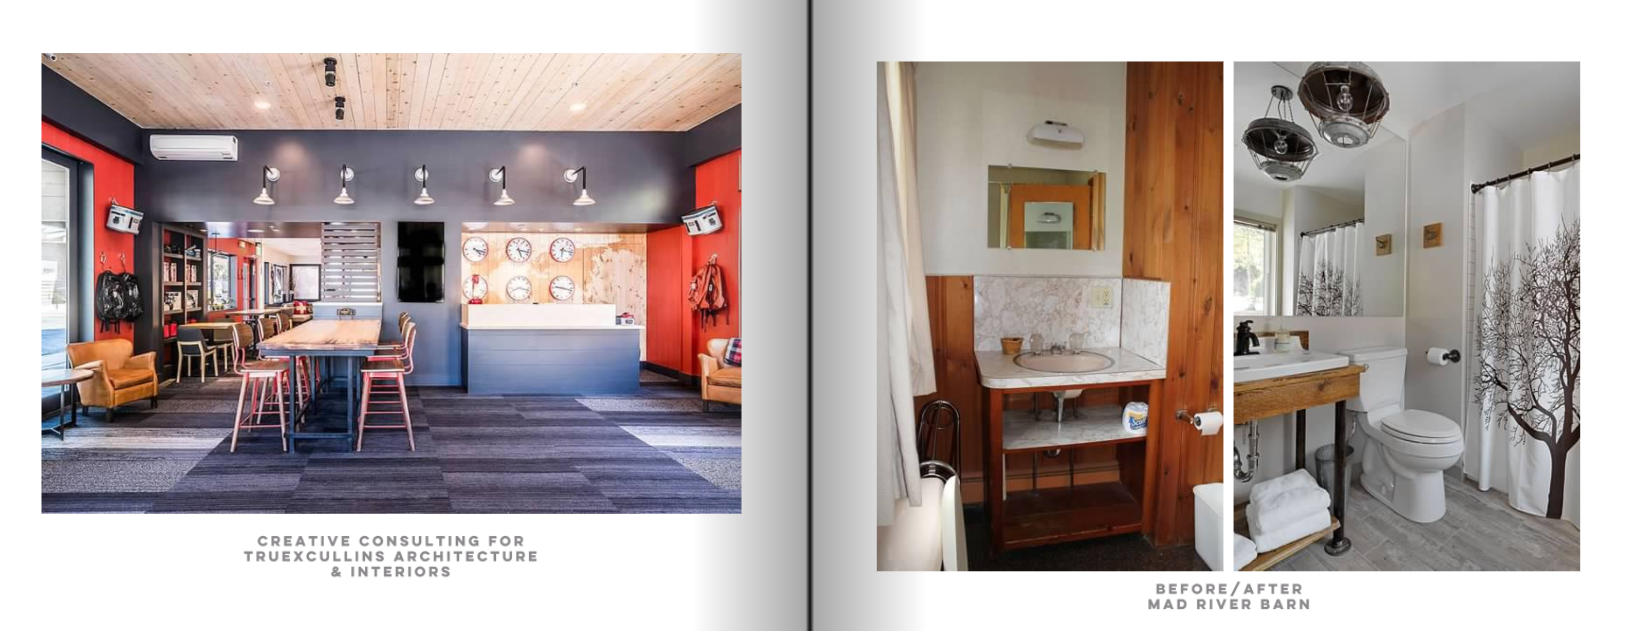 creative consulting lobby design mountain modern motel jackson hole and bathroom renovation at mad river barn inn guest room interior design by joanne palmisano.png